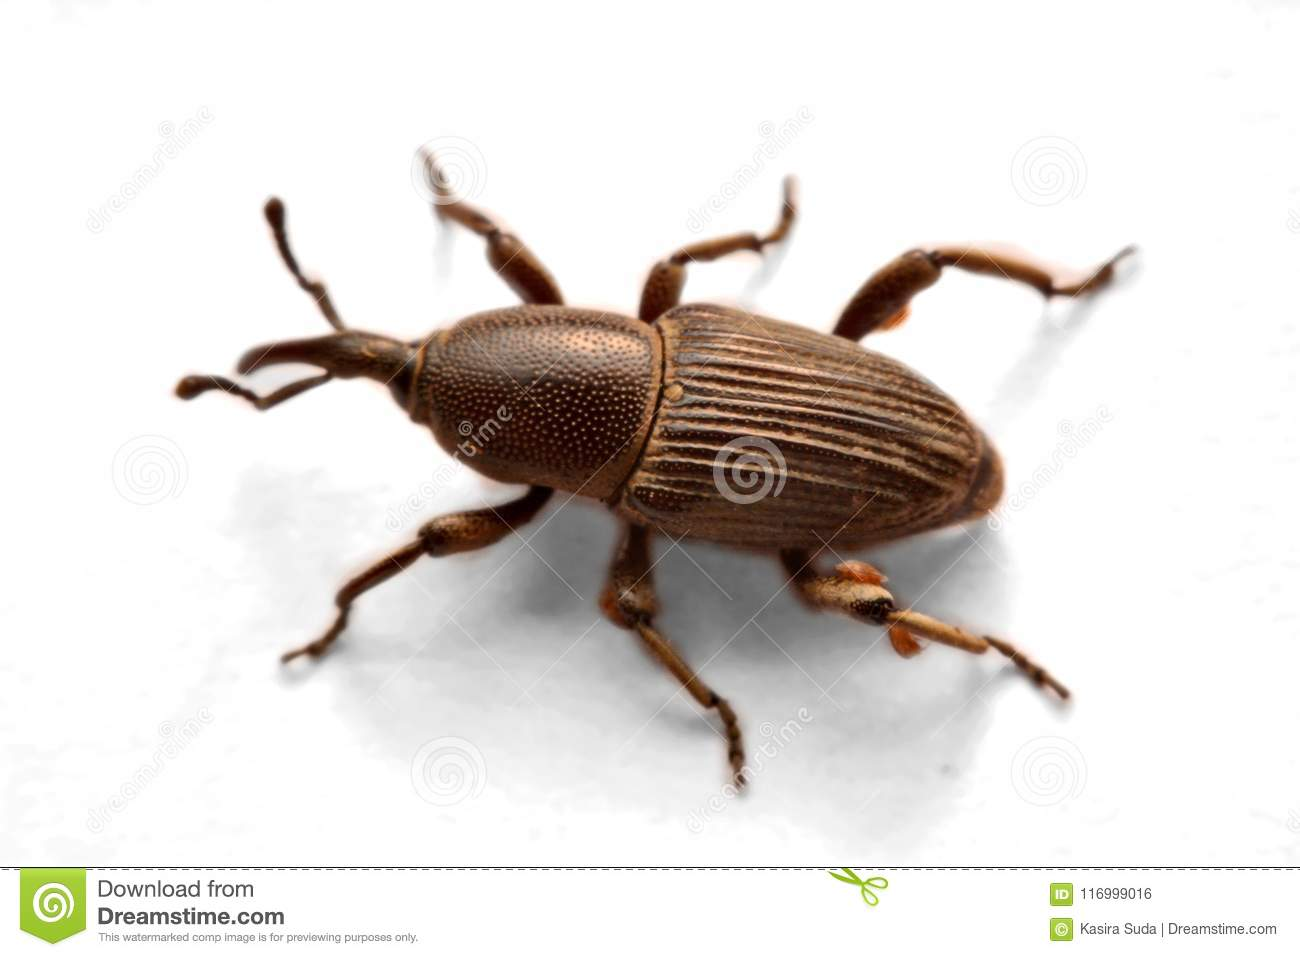 Acorn weevil, Curculio glandium, isolated on whiteA little blac